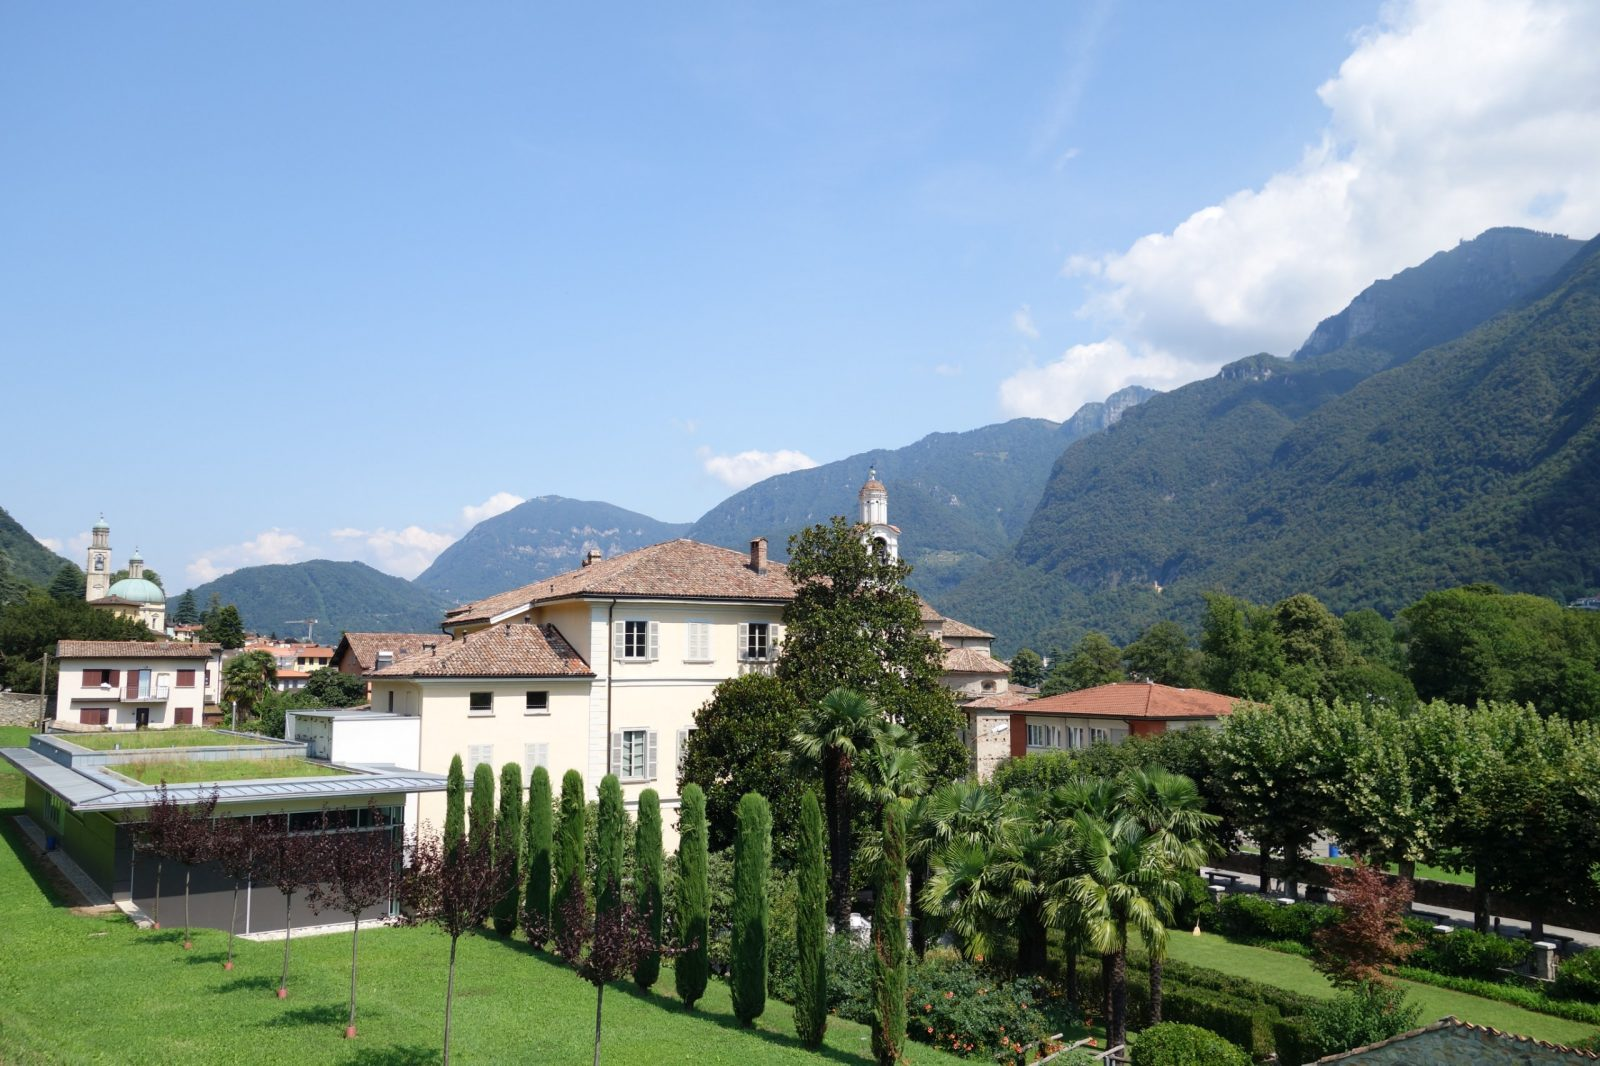 Steger Center, Riva San Vitale, Canton Ticino, Switzerland